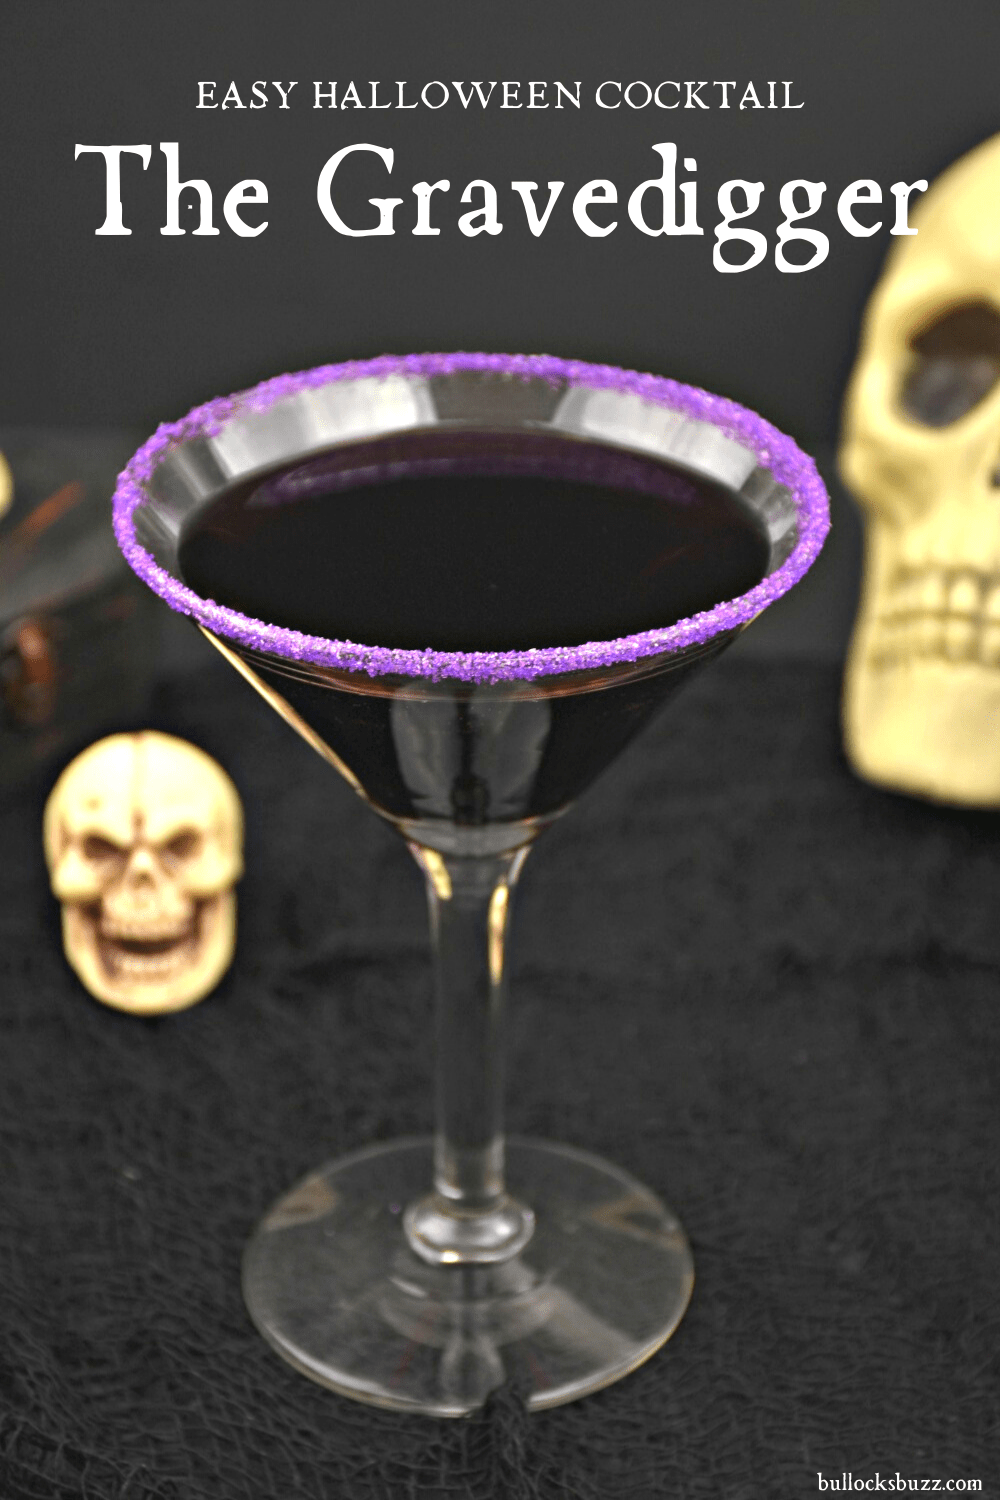 dark purple Halloween Cocoktail in cocktail glass with purple sugar rim